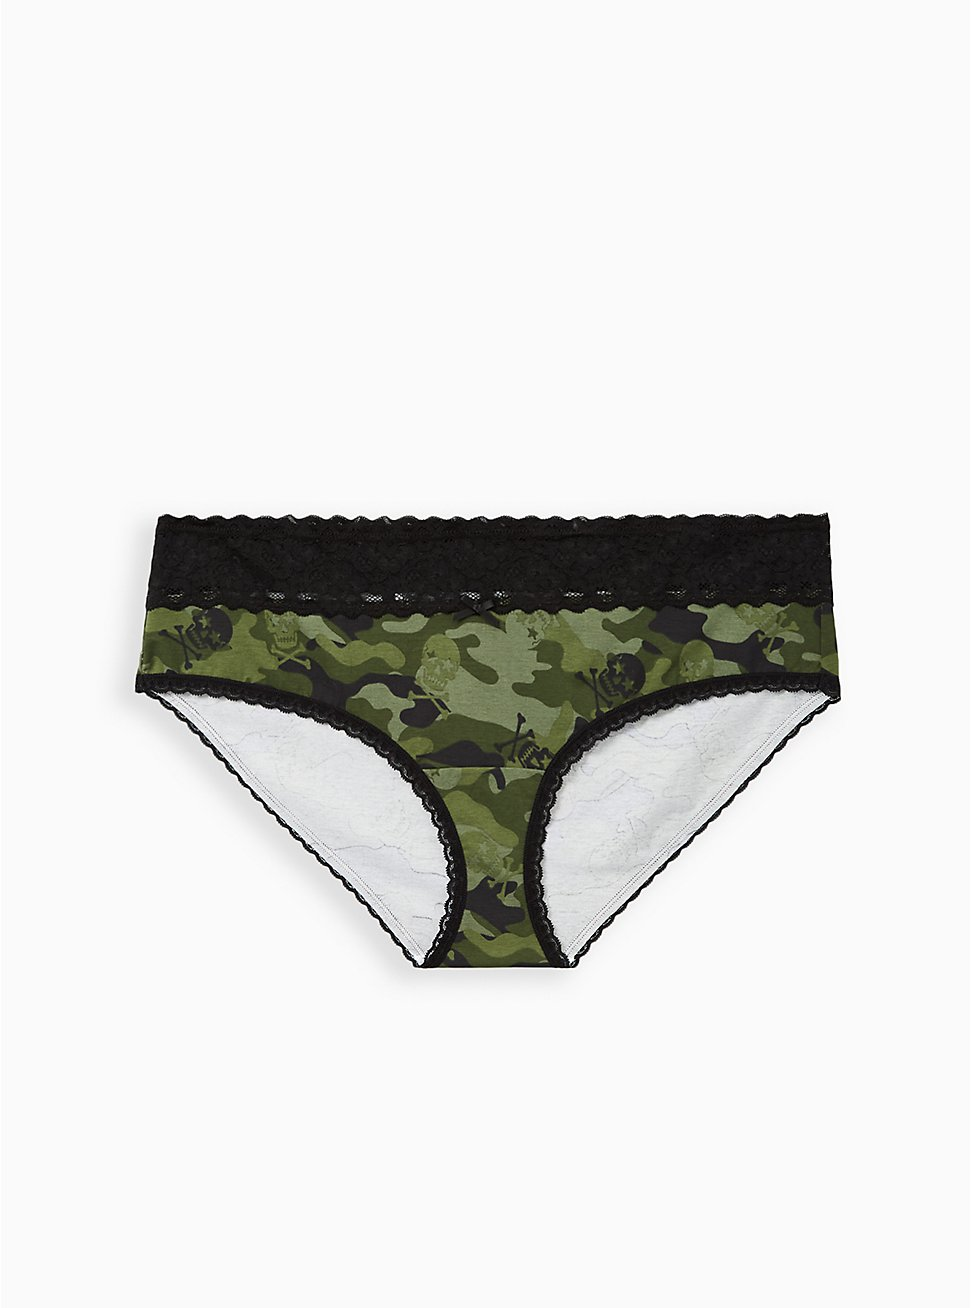 Olive Skull Camo Wide Lace Cotton Cheeky Panty, Camo Skull Toss- OLIVE, hi-res